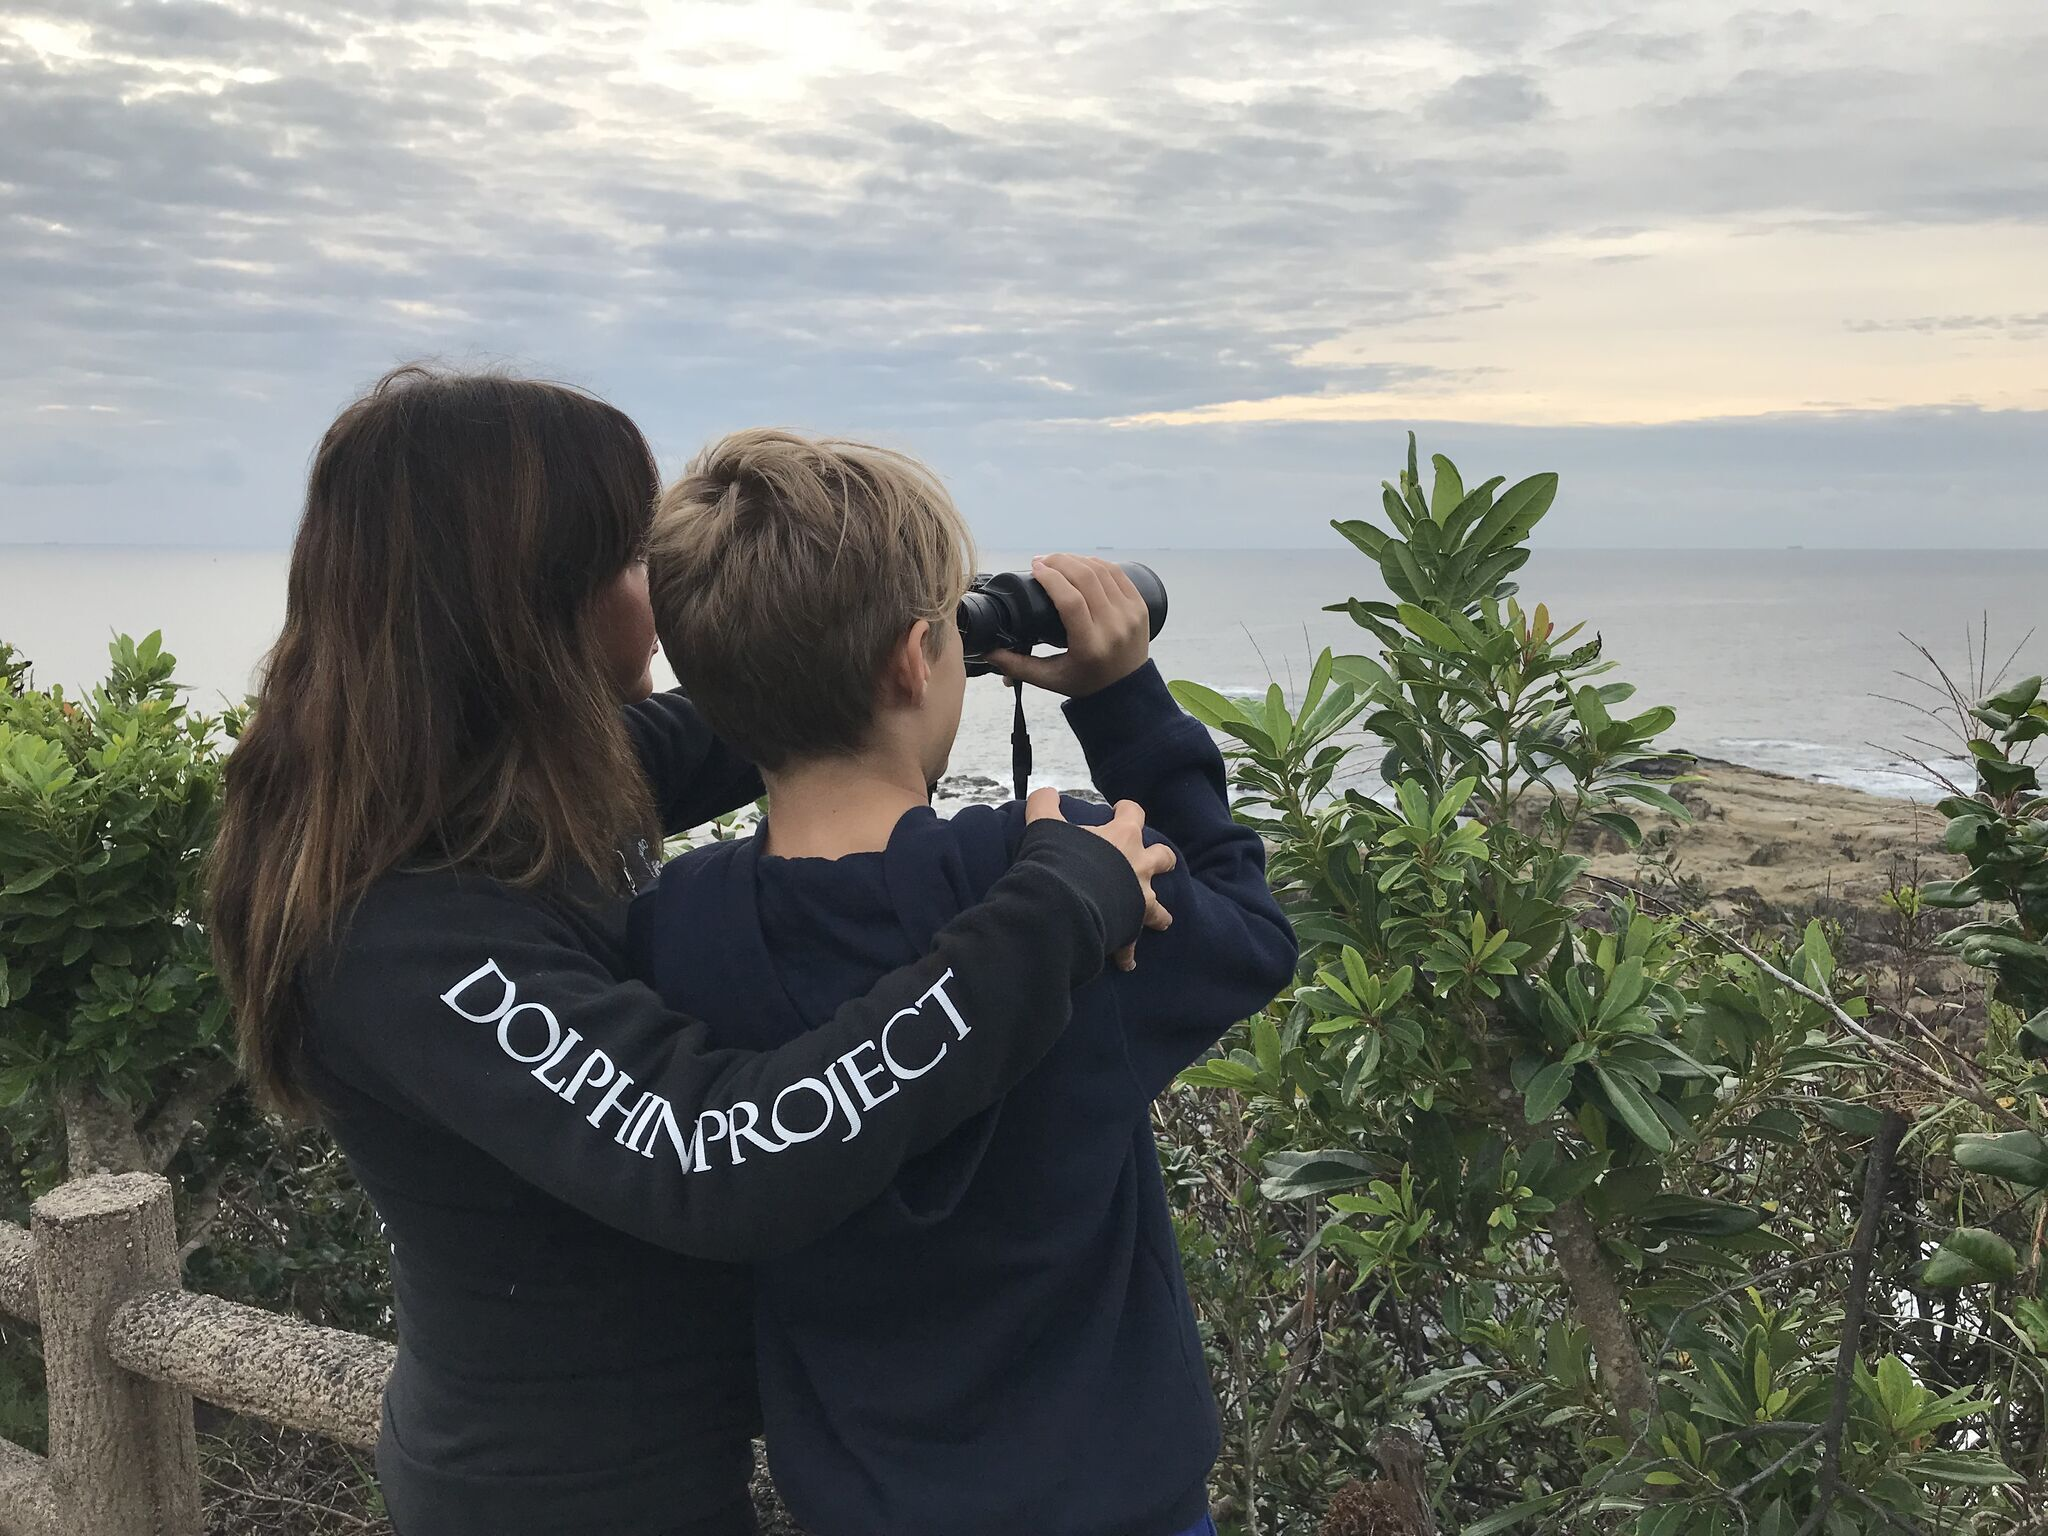 Dolphin Project Cove Monitors scan the horizon for dolphin hunting boats, Taiji, Japan.